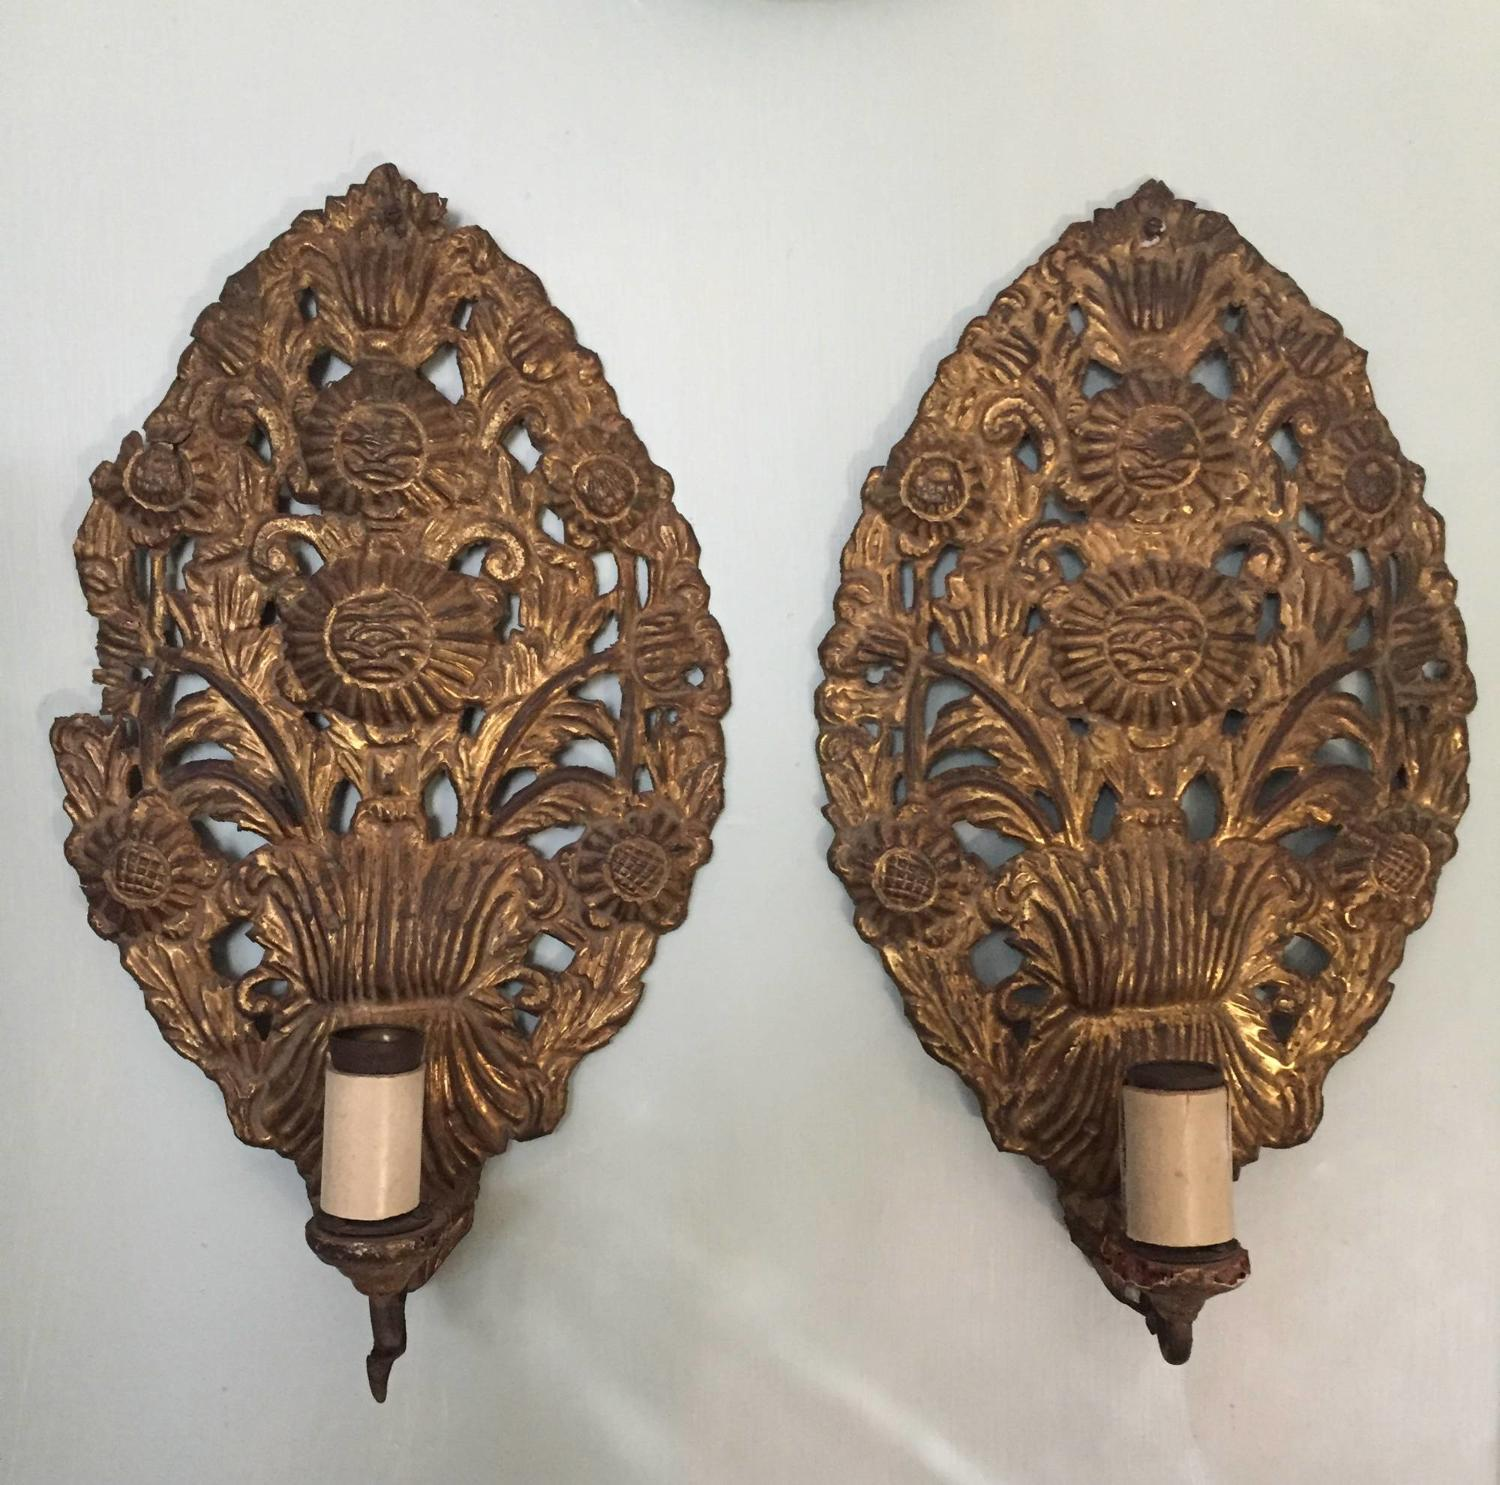 Pair of Spanish Gilt Brass Wall Sconces